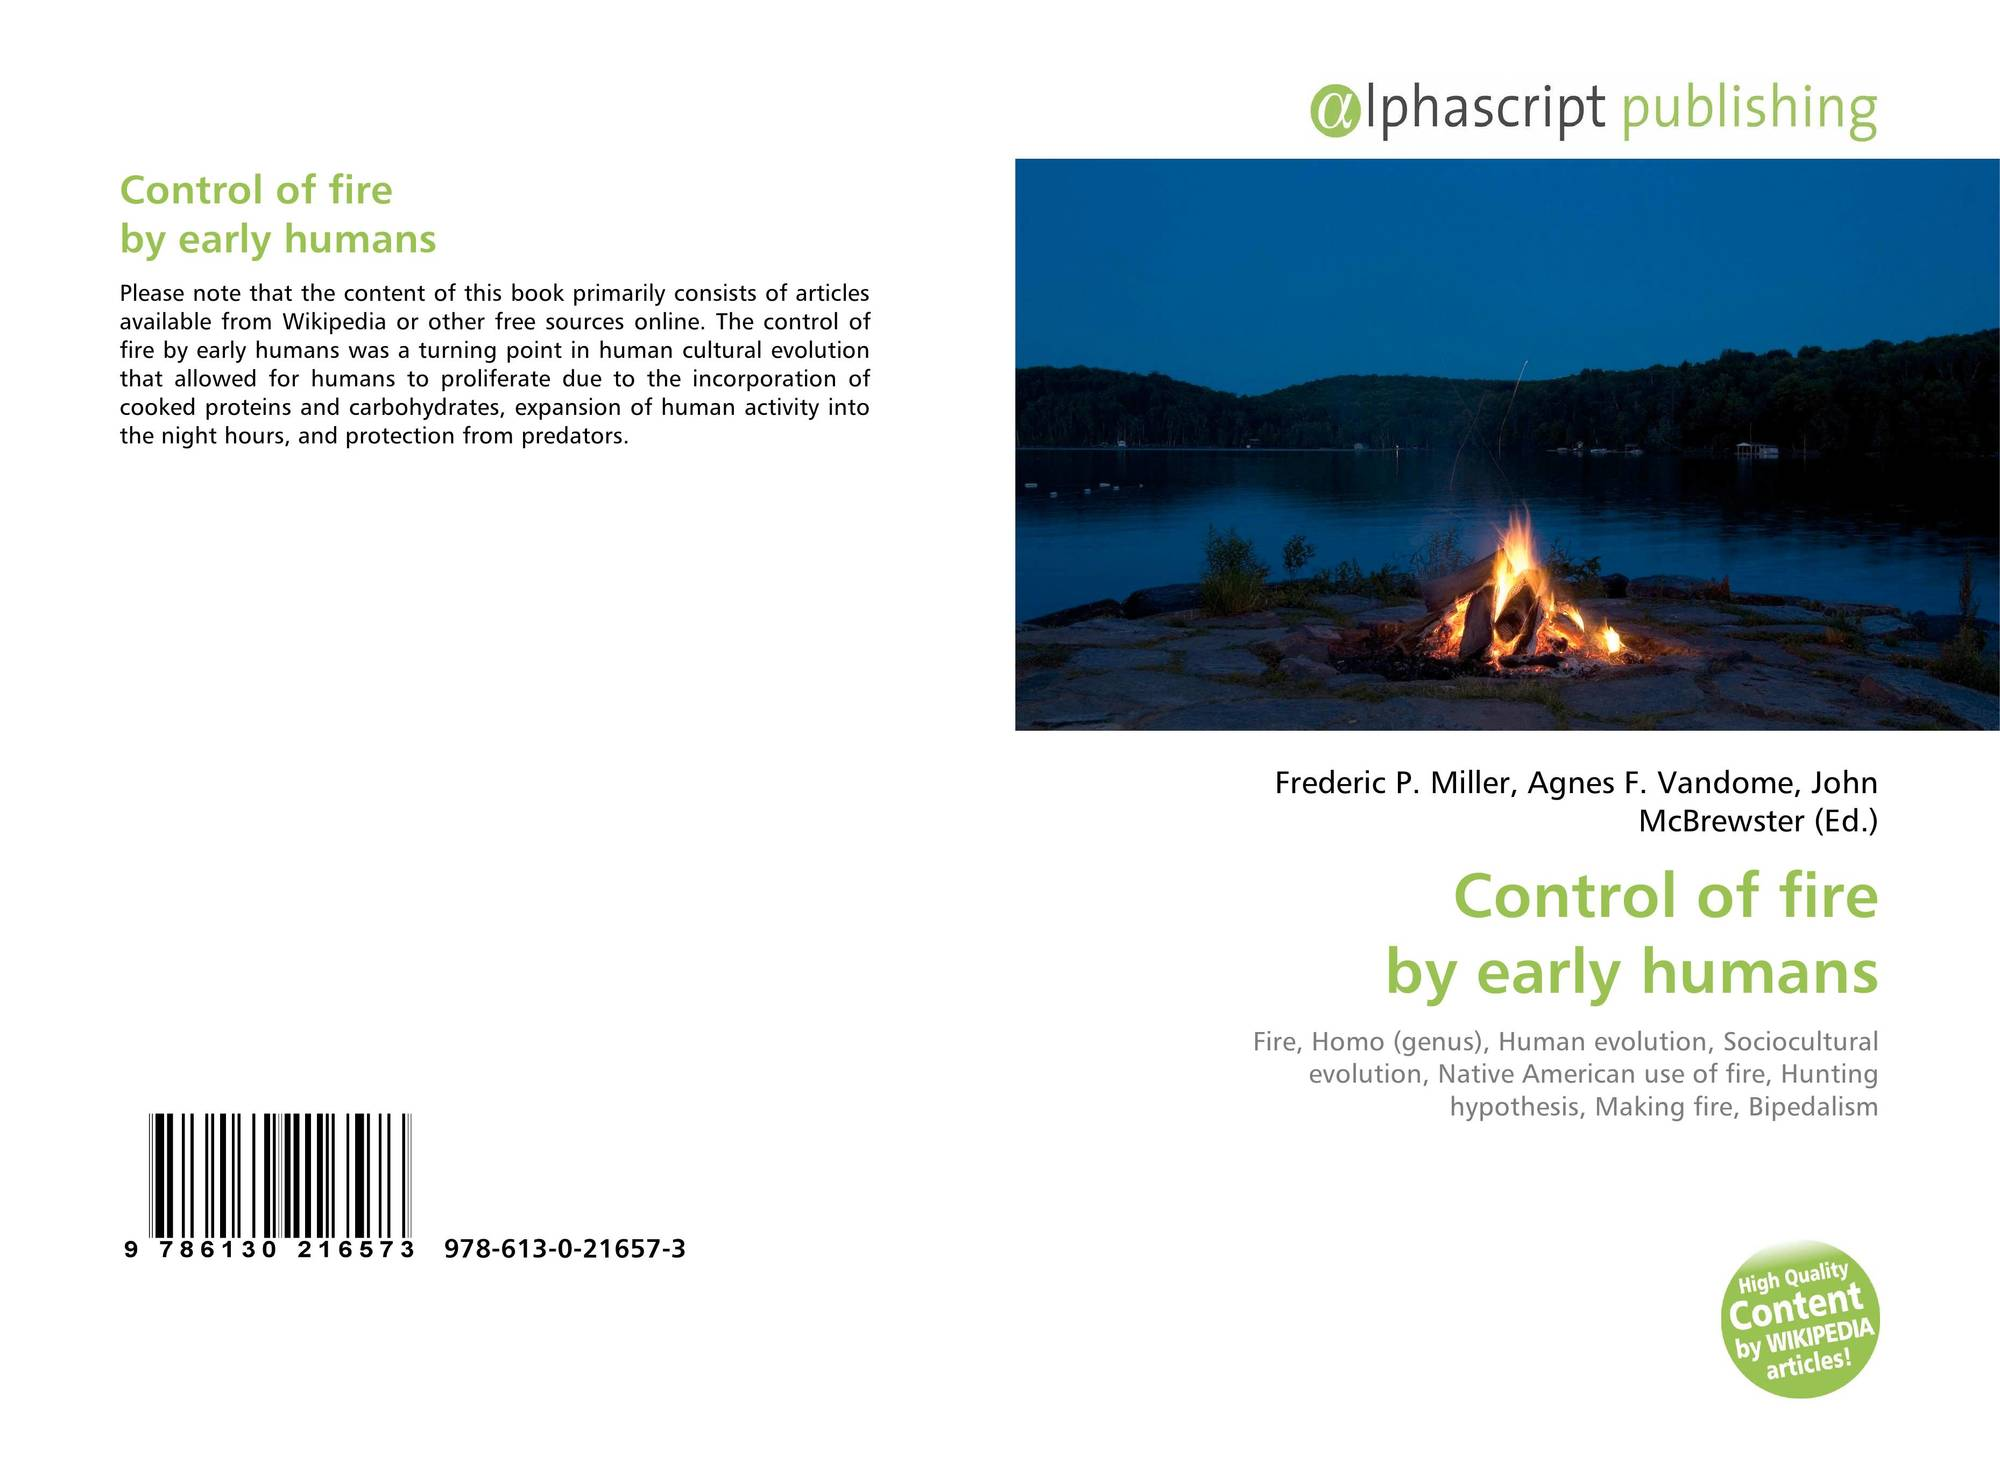 Control of fire by early humans, 978-613-0-21657-3, 6130216572  ,9786130216573